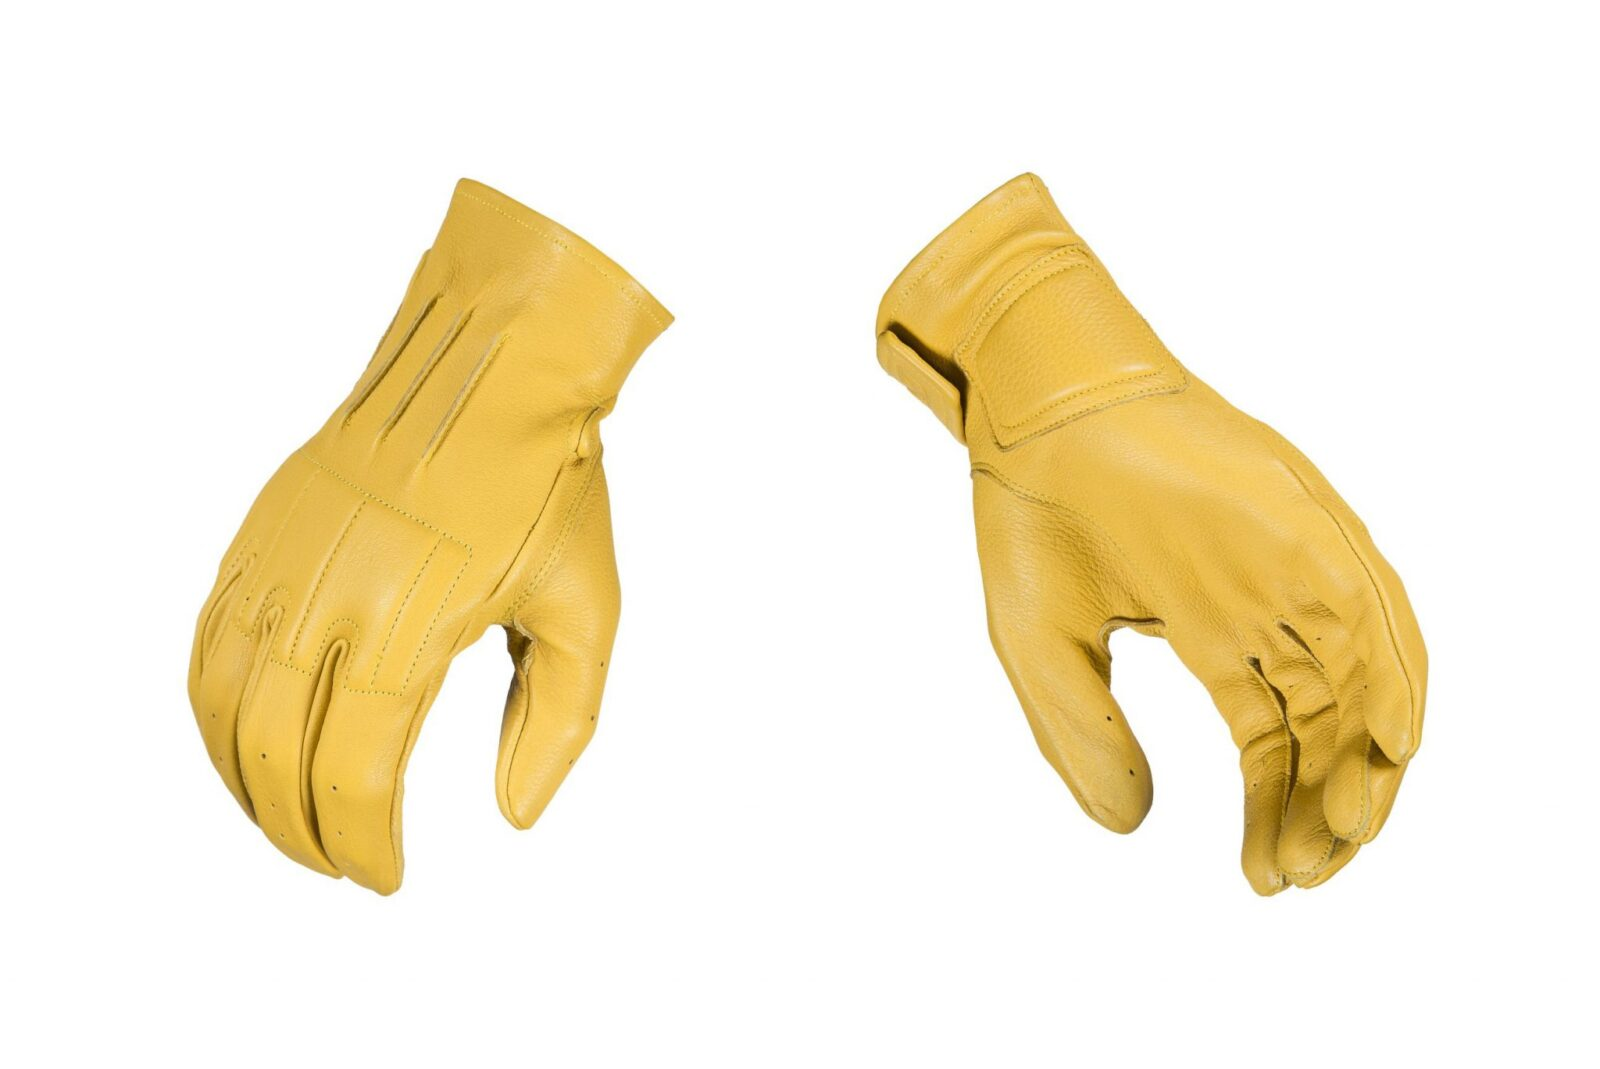 Klim Rambler Gloves 1600x1069 - Klim Rambler Gloves